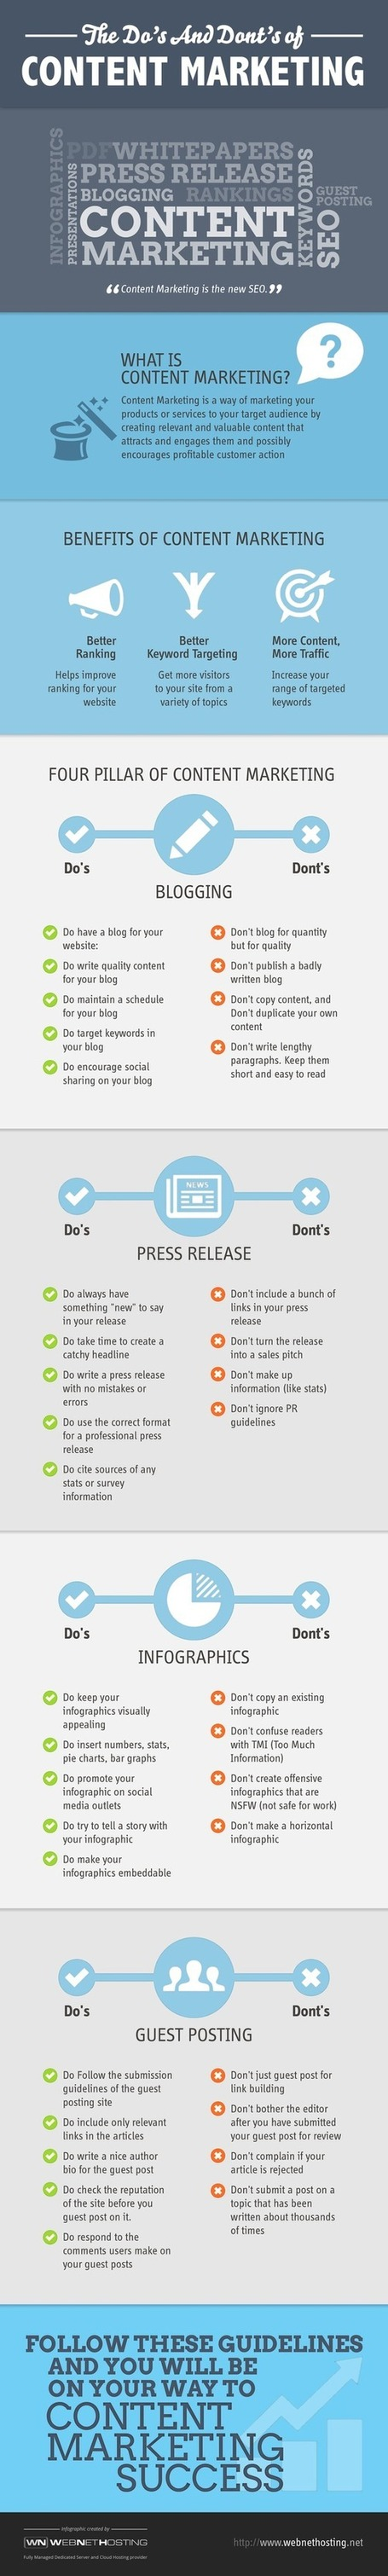 The Do's and Dont's of Content Marketing - Infographic | Innovatus | Scoop.it